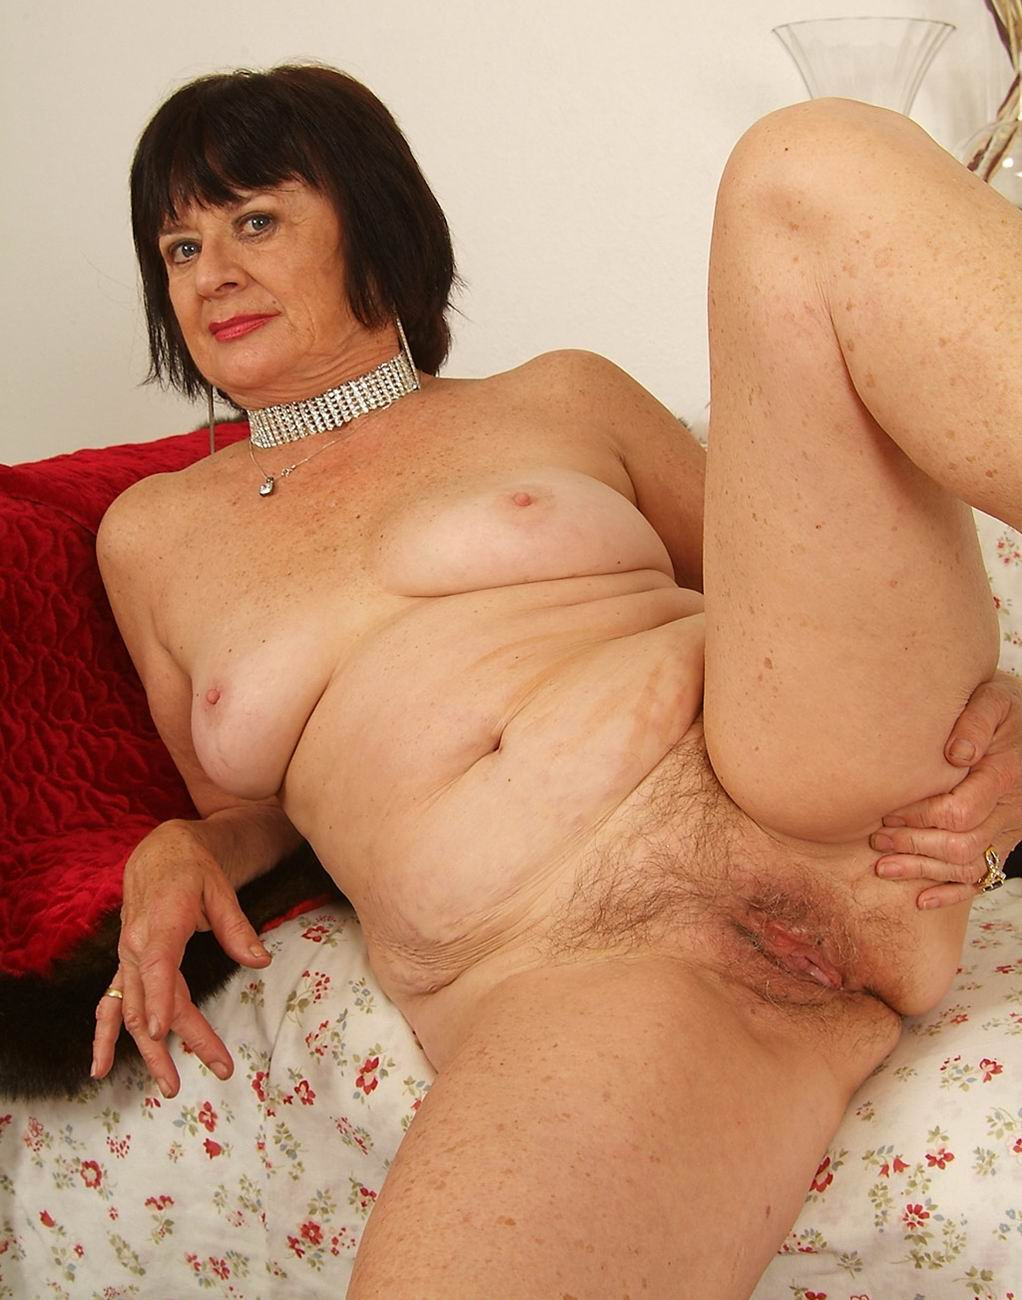 grandma hd porno naked girls - disneydiscount